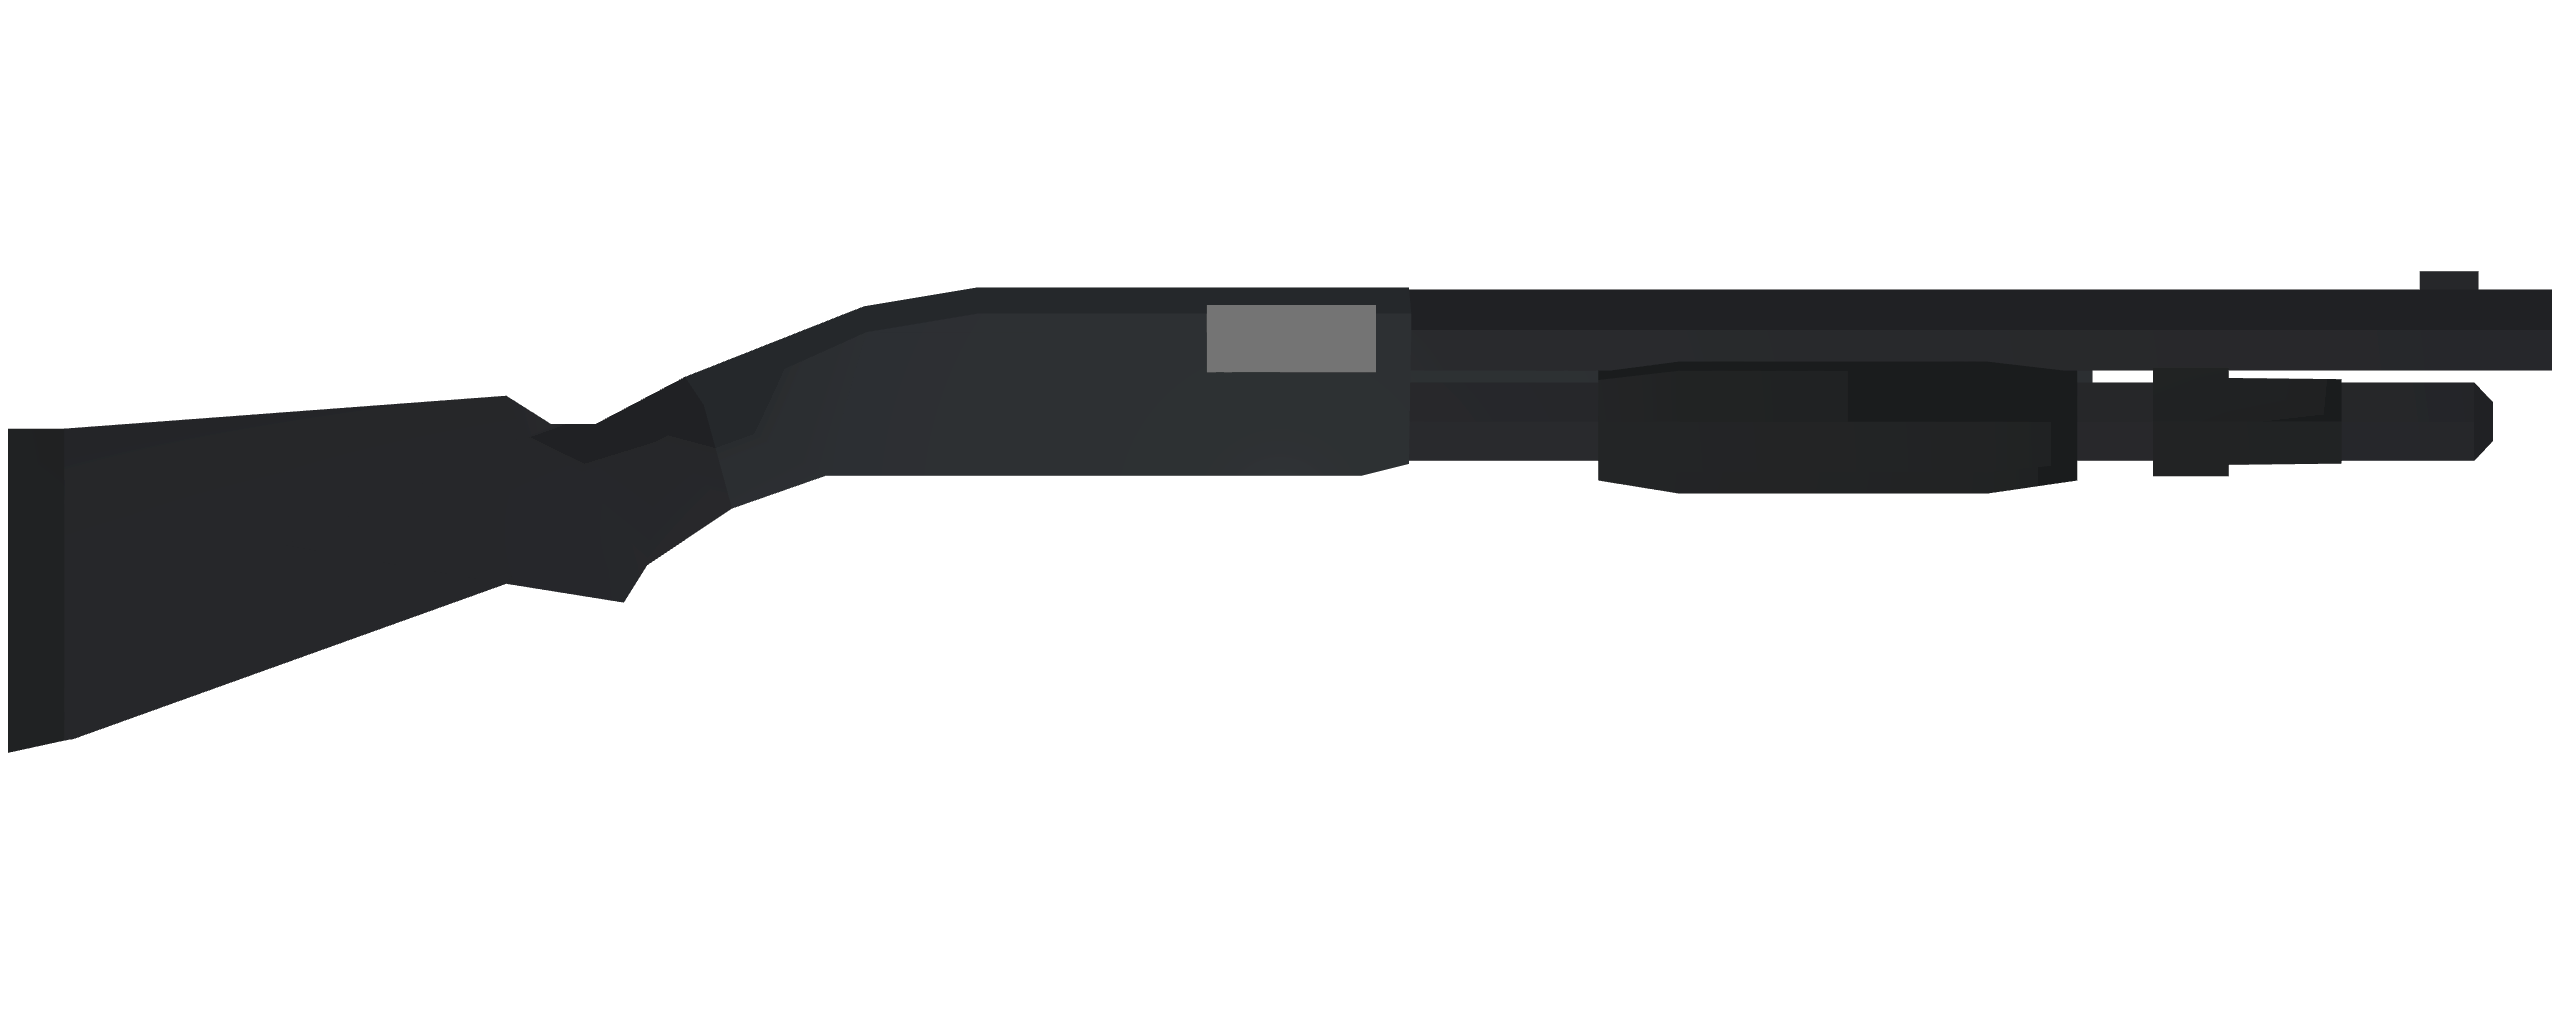 Unturned - All Weapons ID's for Uncreated Warfare Mods - USA Weapons - 6CF73CD